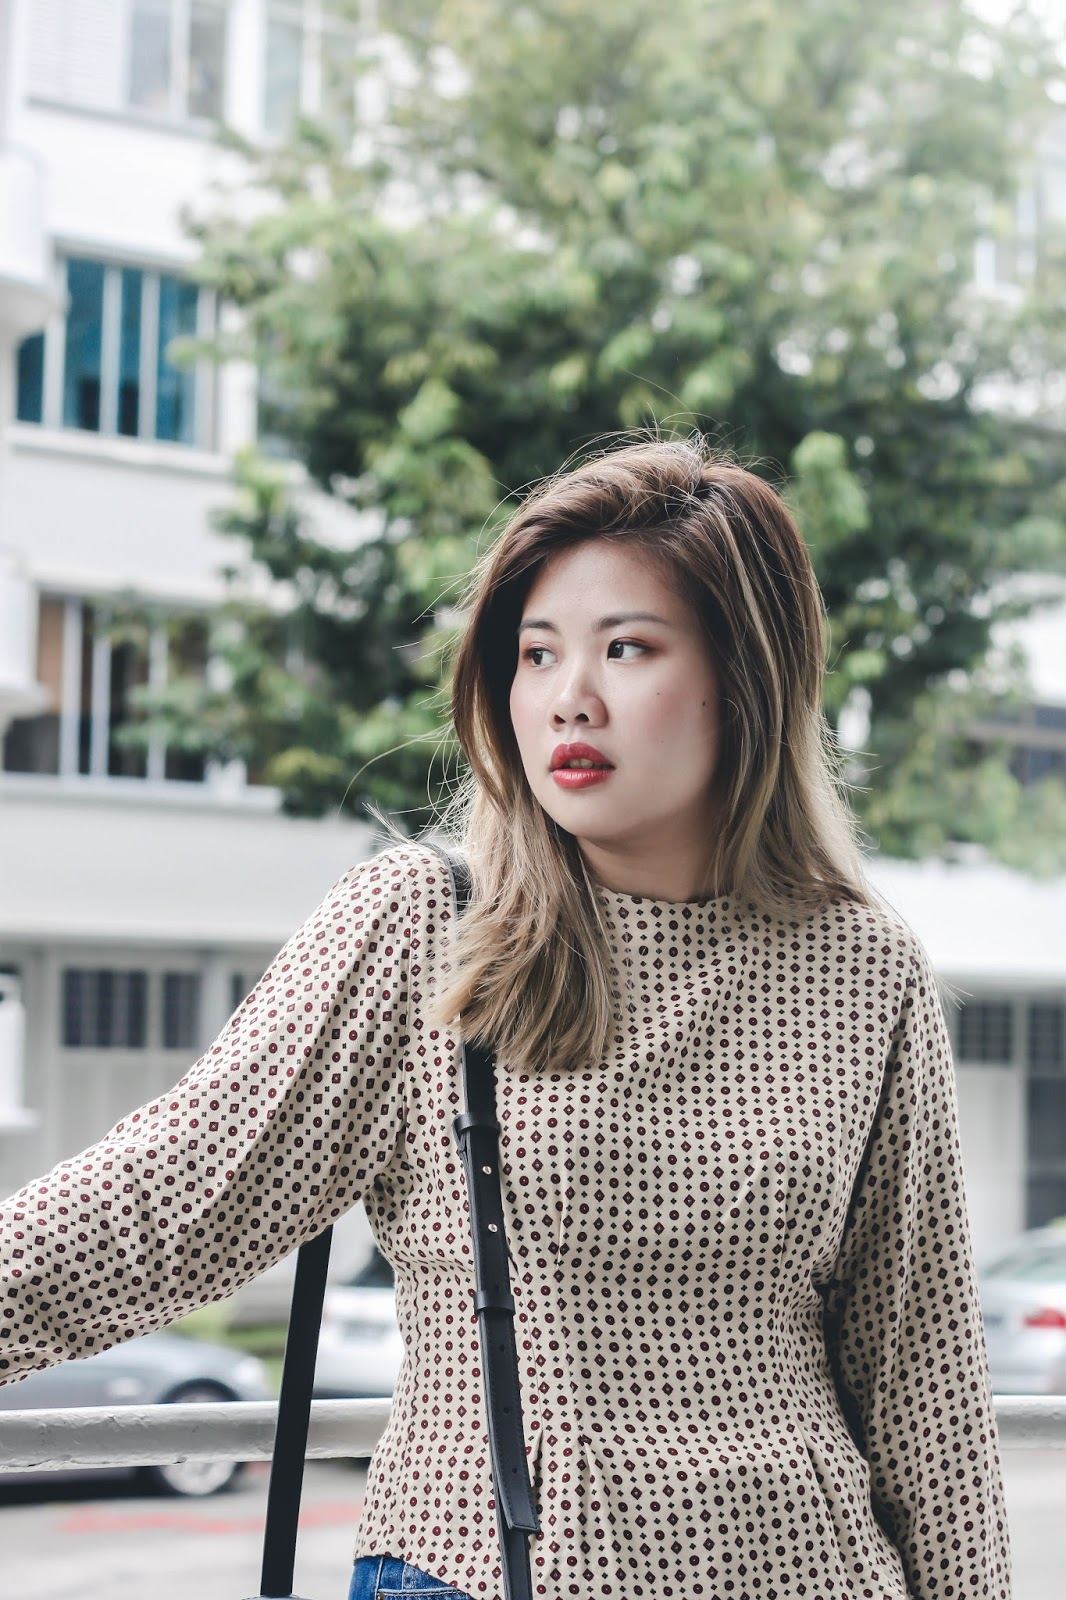 singapore blogger style street fashion photographer look book outfit wiwt ootd stylexstyle bloglovin